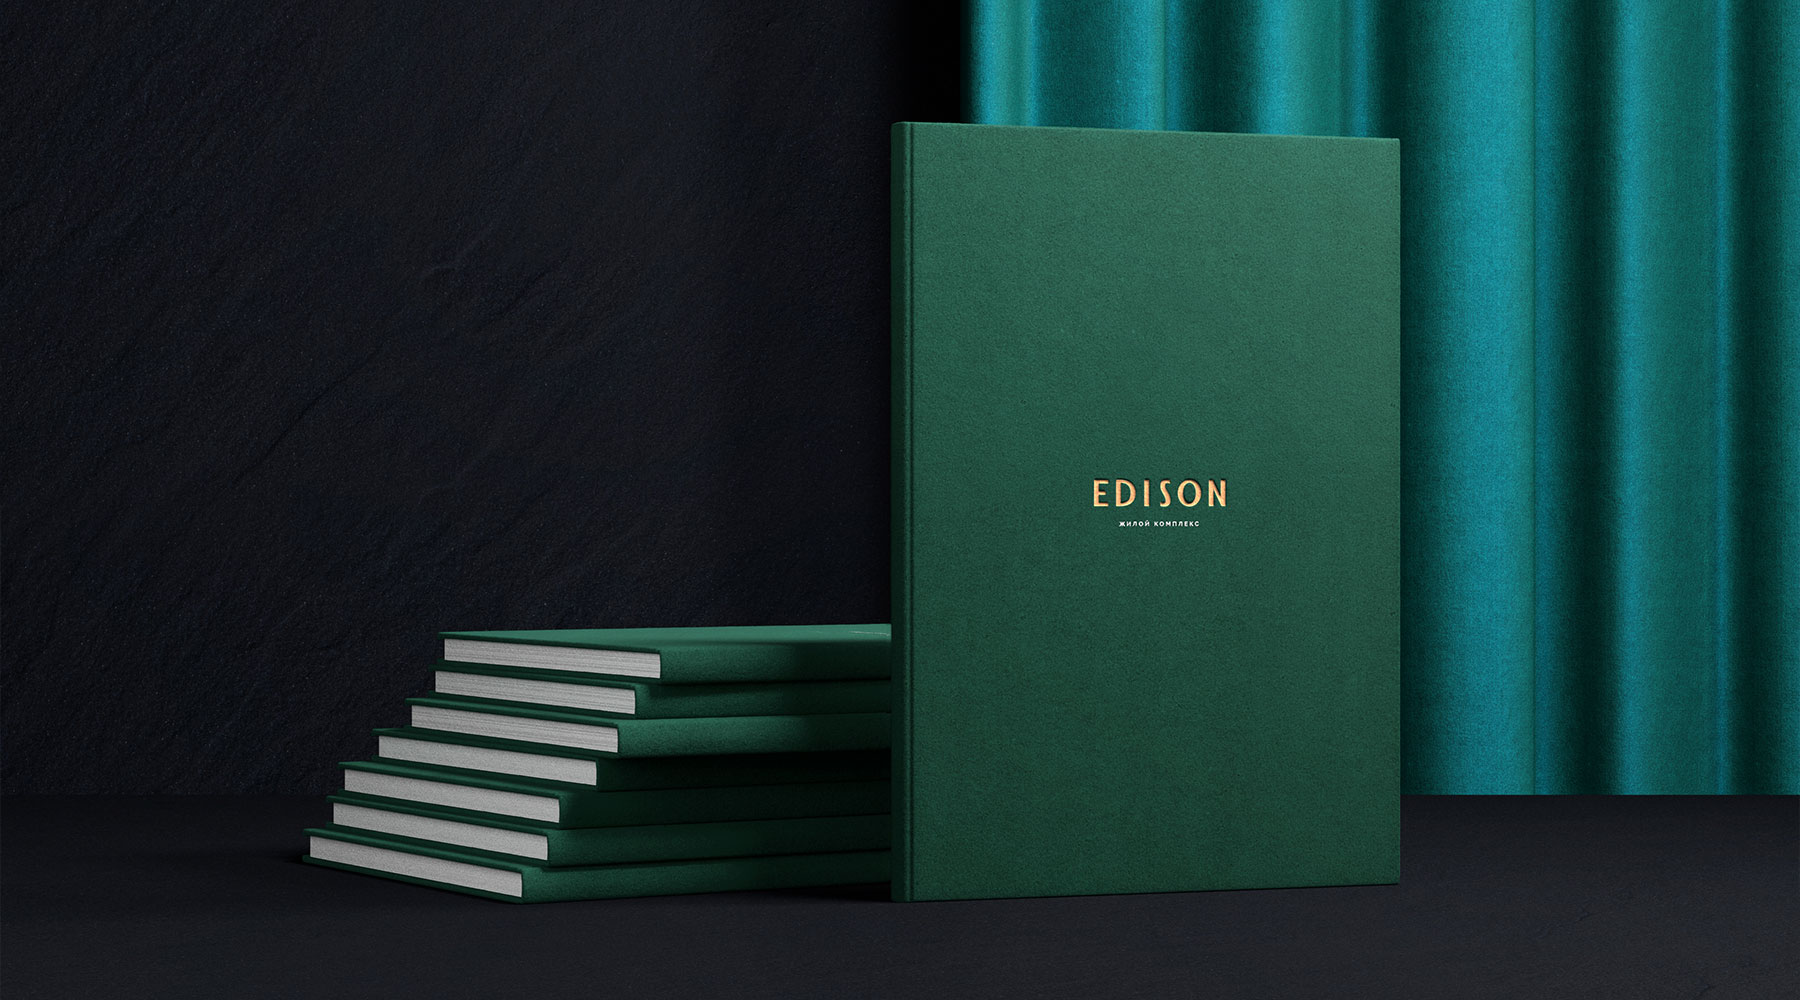 edison-catalog-stack